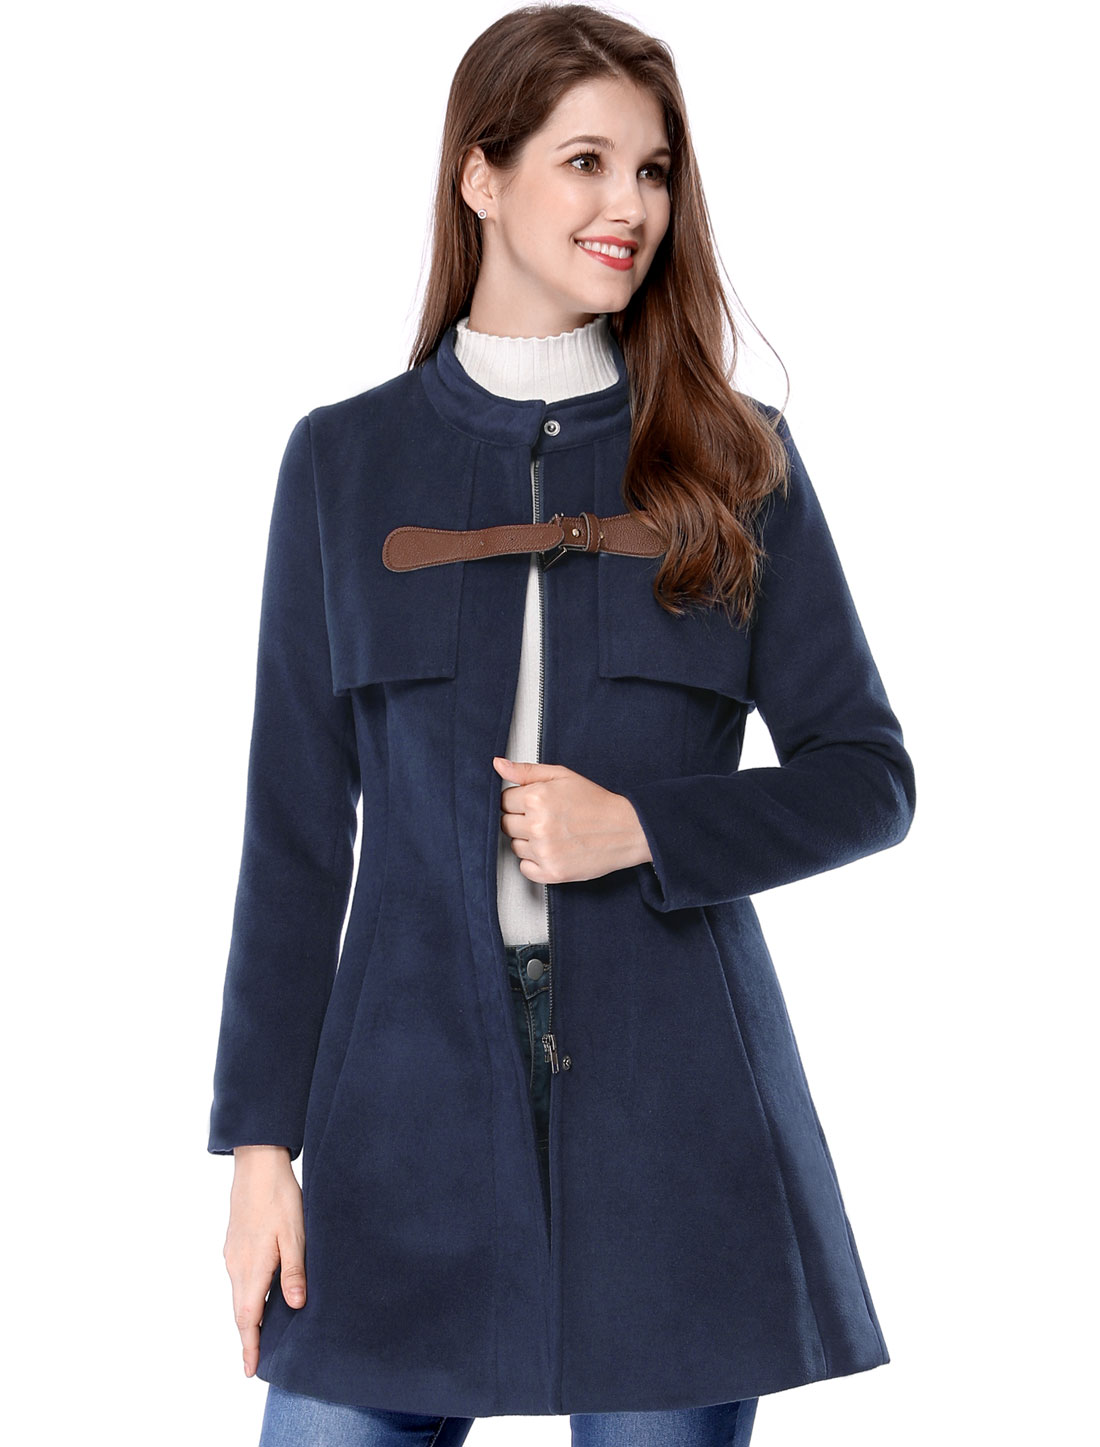 Women Band Collar Buckle Fastening Worsted Caped Flare Coat Blue S